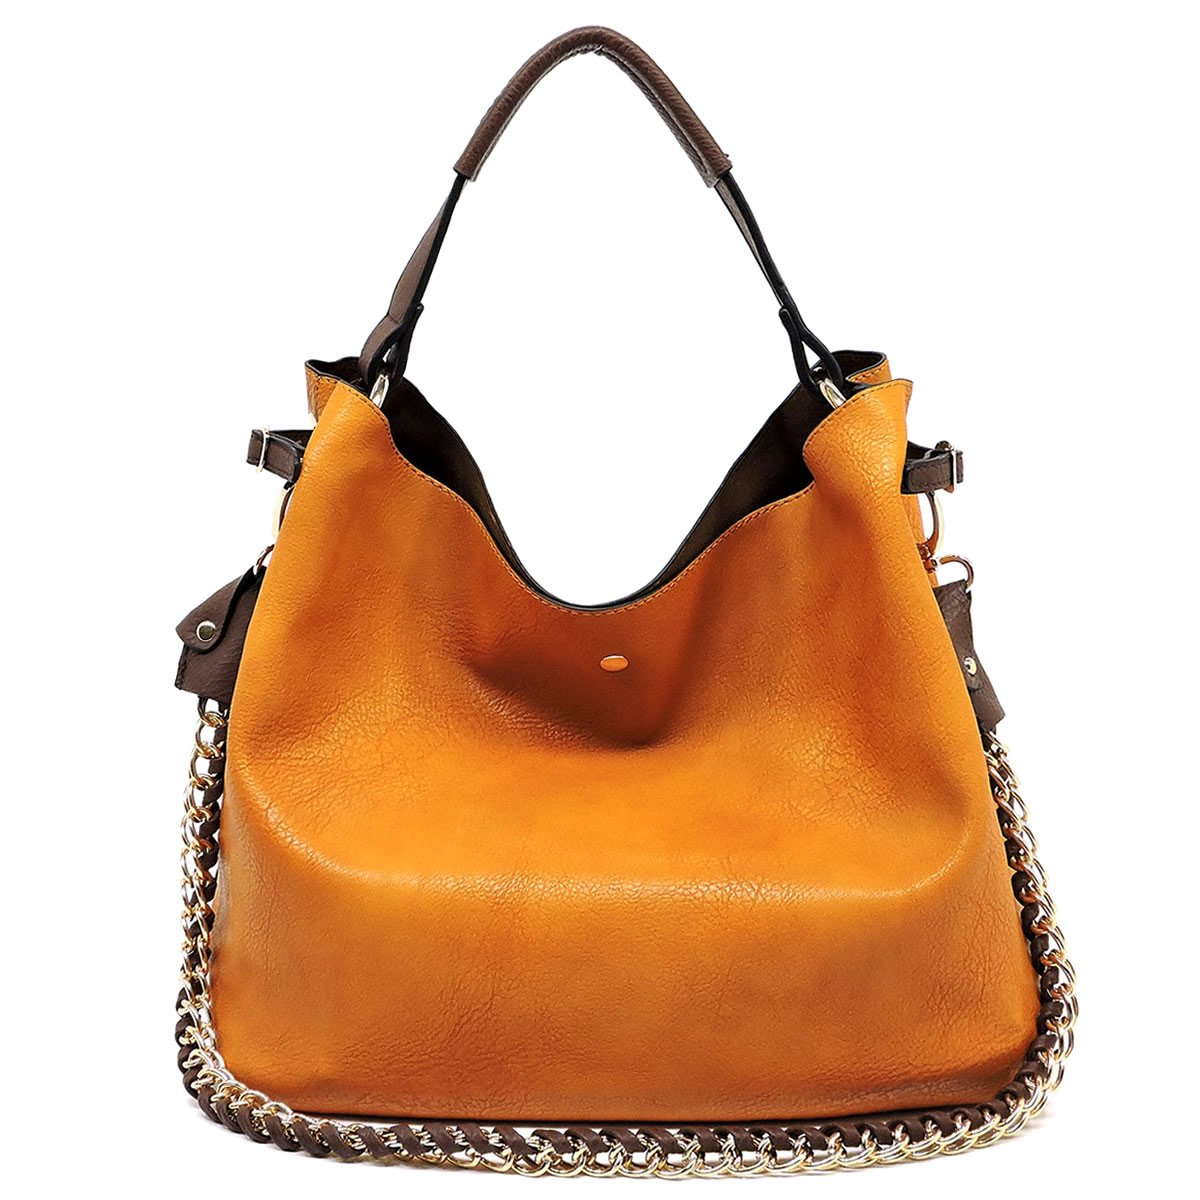 Americana Bucket Style Hobo Shoulder Bag with Big Chain Strap 2 in 1 Bag